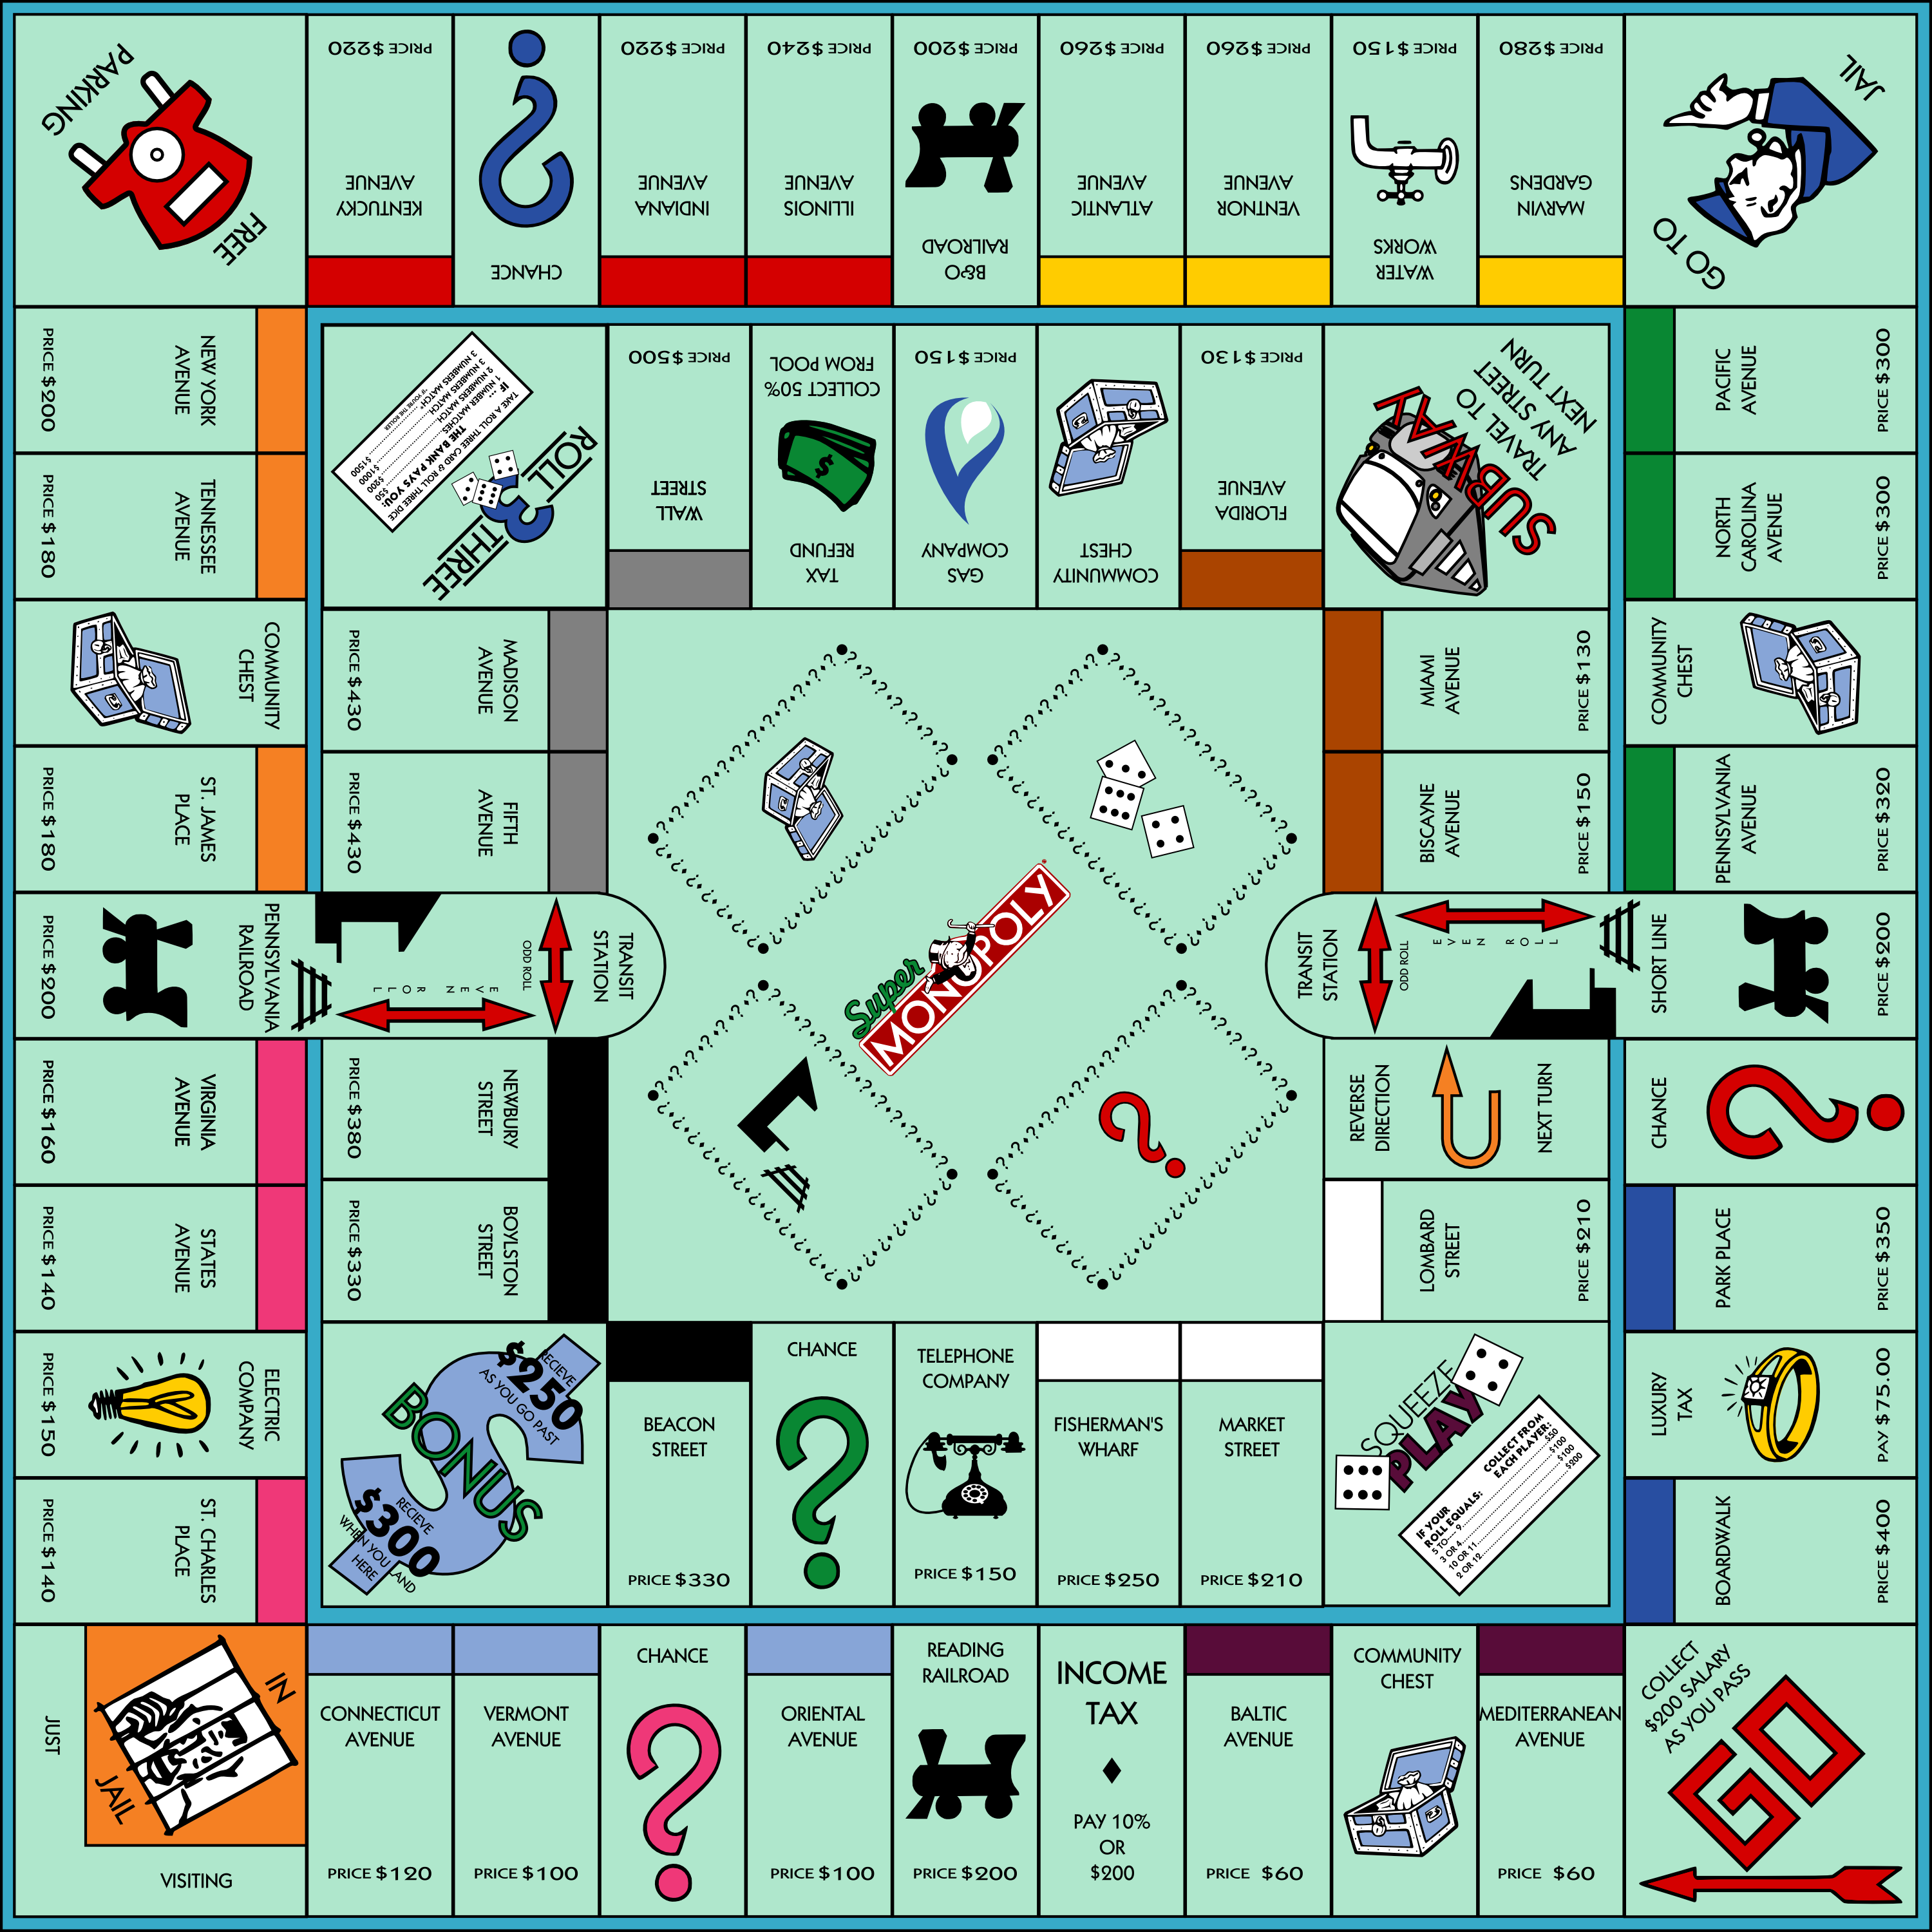 Pictures images snakes and ladders board game template wallpaper - Board Games That Will Never Grow Old Gamersunite Boardgames